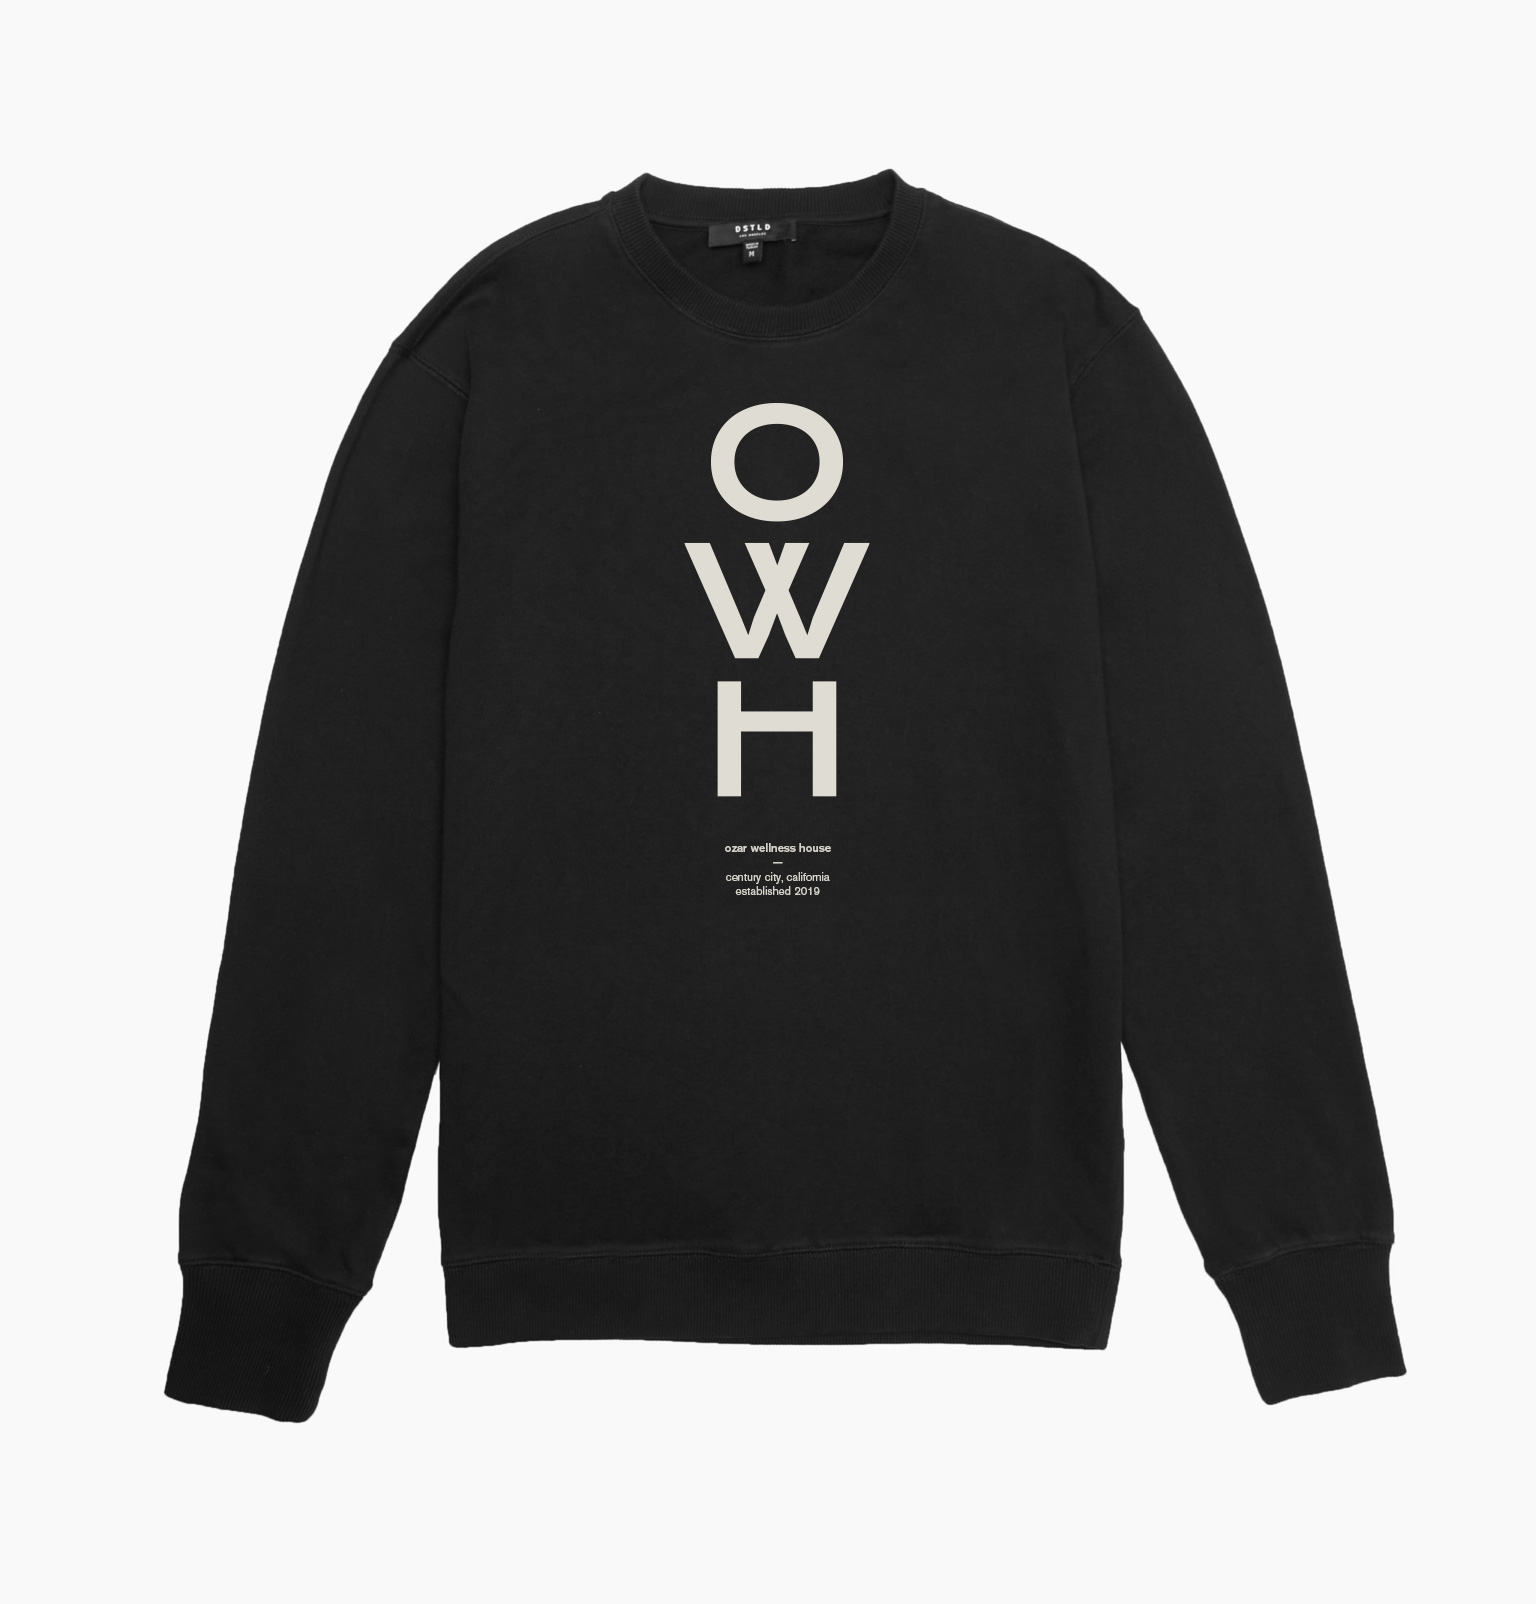 OWH sweater